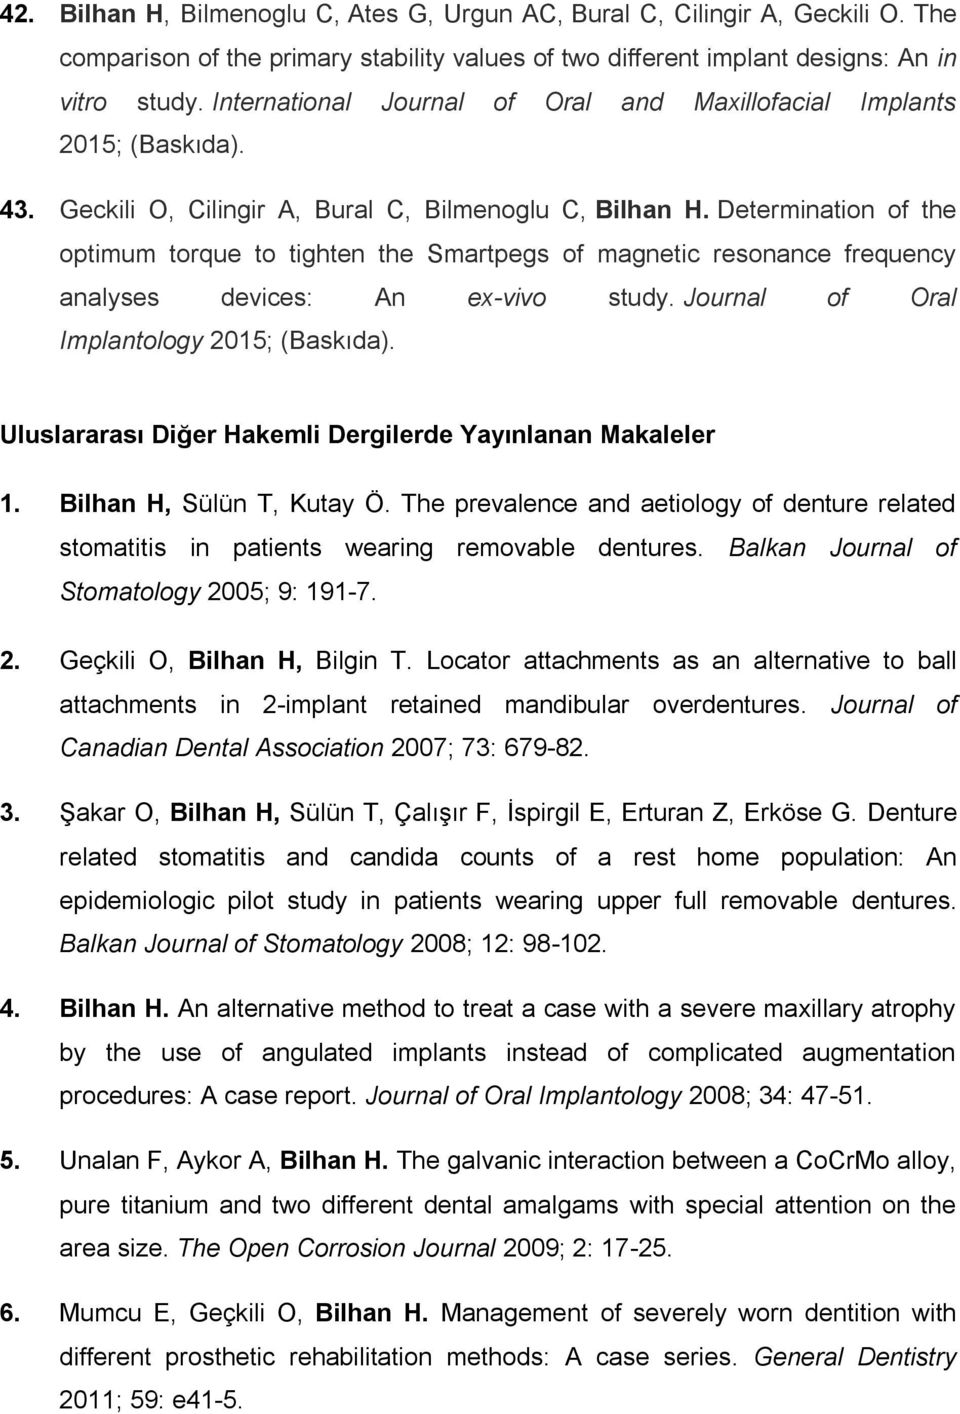 Determination of the optimum torque to tighten the Smartpegs of magnetic resonance frequency analyses devices: An ex-vivo study. Journal of Oral Implantology 2015; (Baskıda).